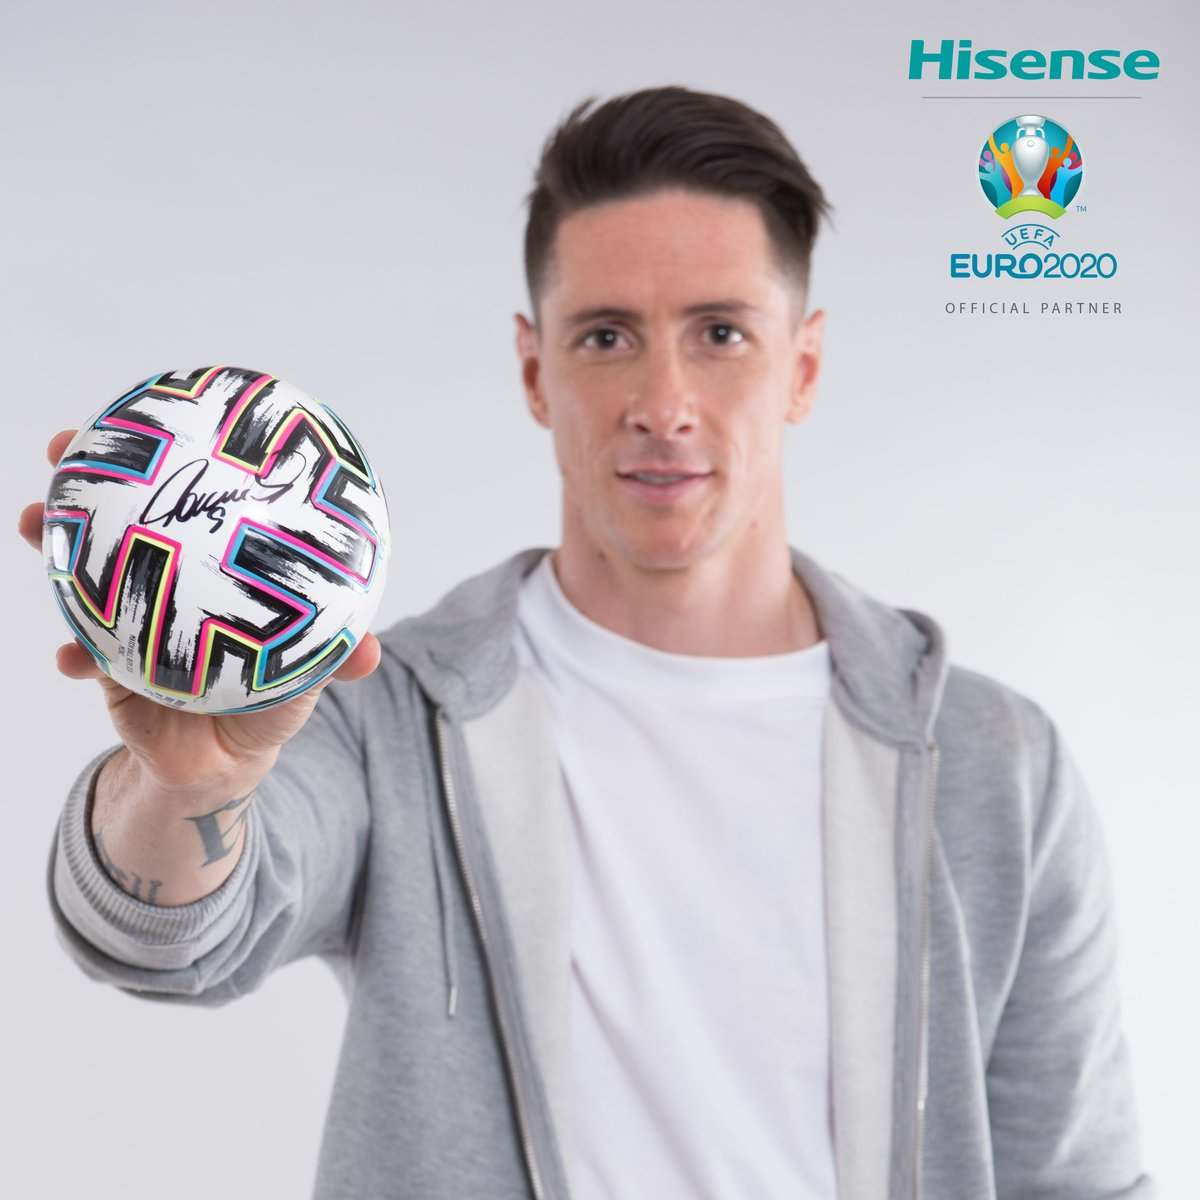 We're giving you the chance to win a mini @euro2020 UNIFORIA football, signed by our ambassador @Torres  ✍️⚽   All you have to do is: ✅ Follow @HisenseSports  🔁 Retweet   #HisenseSports #EURO2020